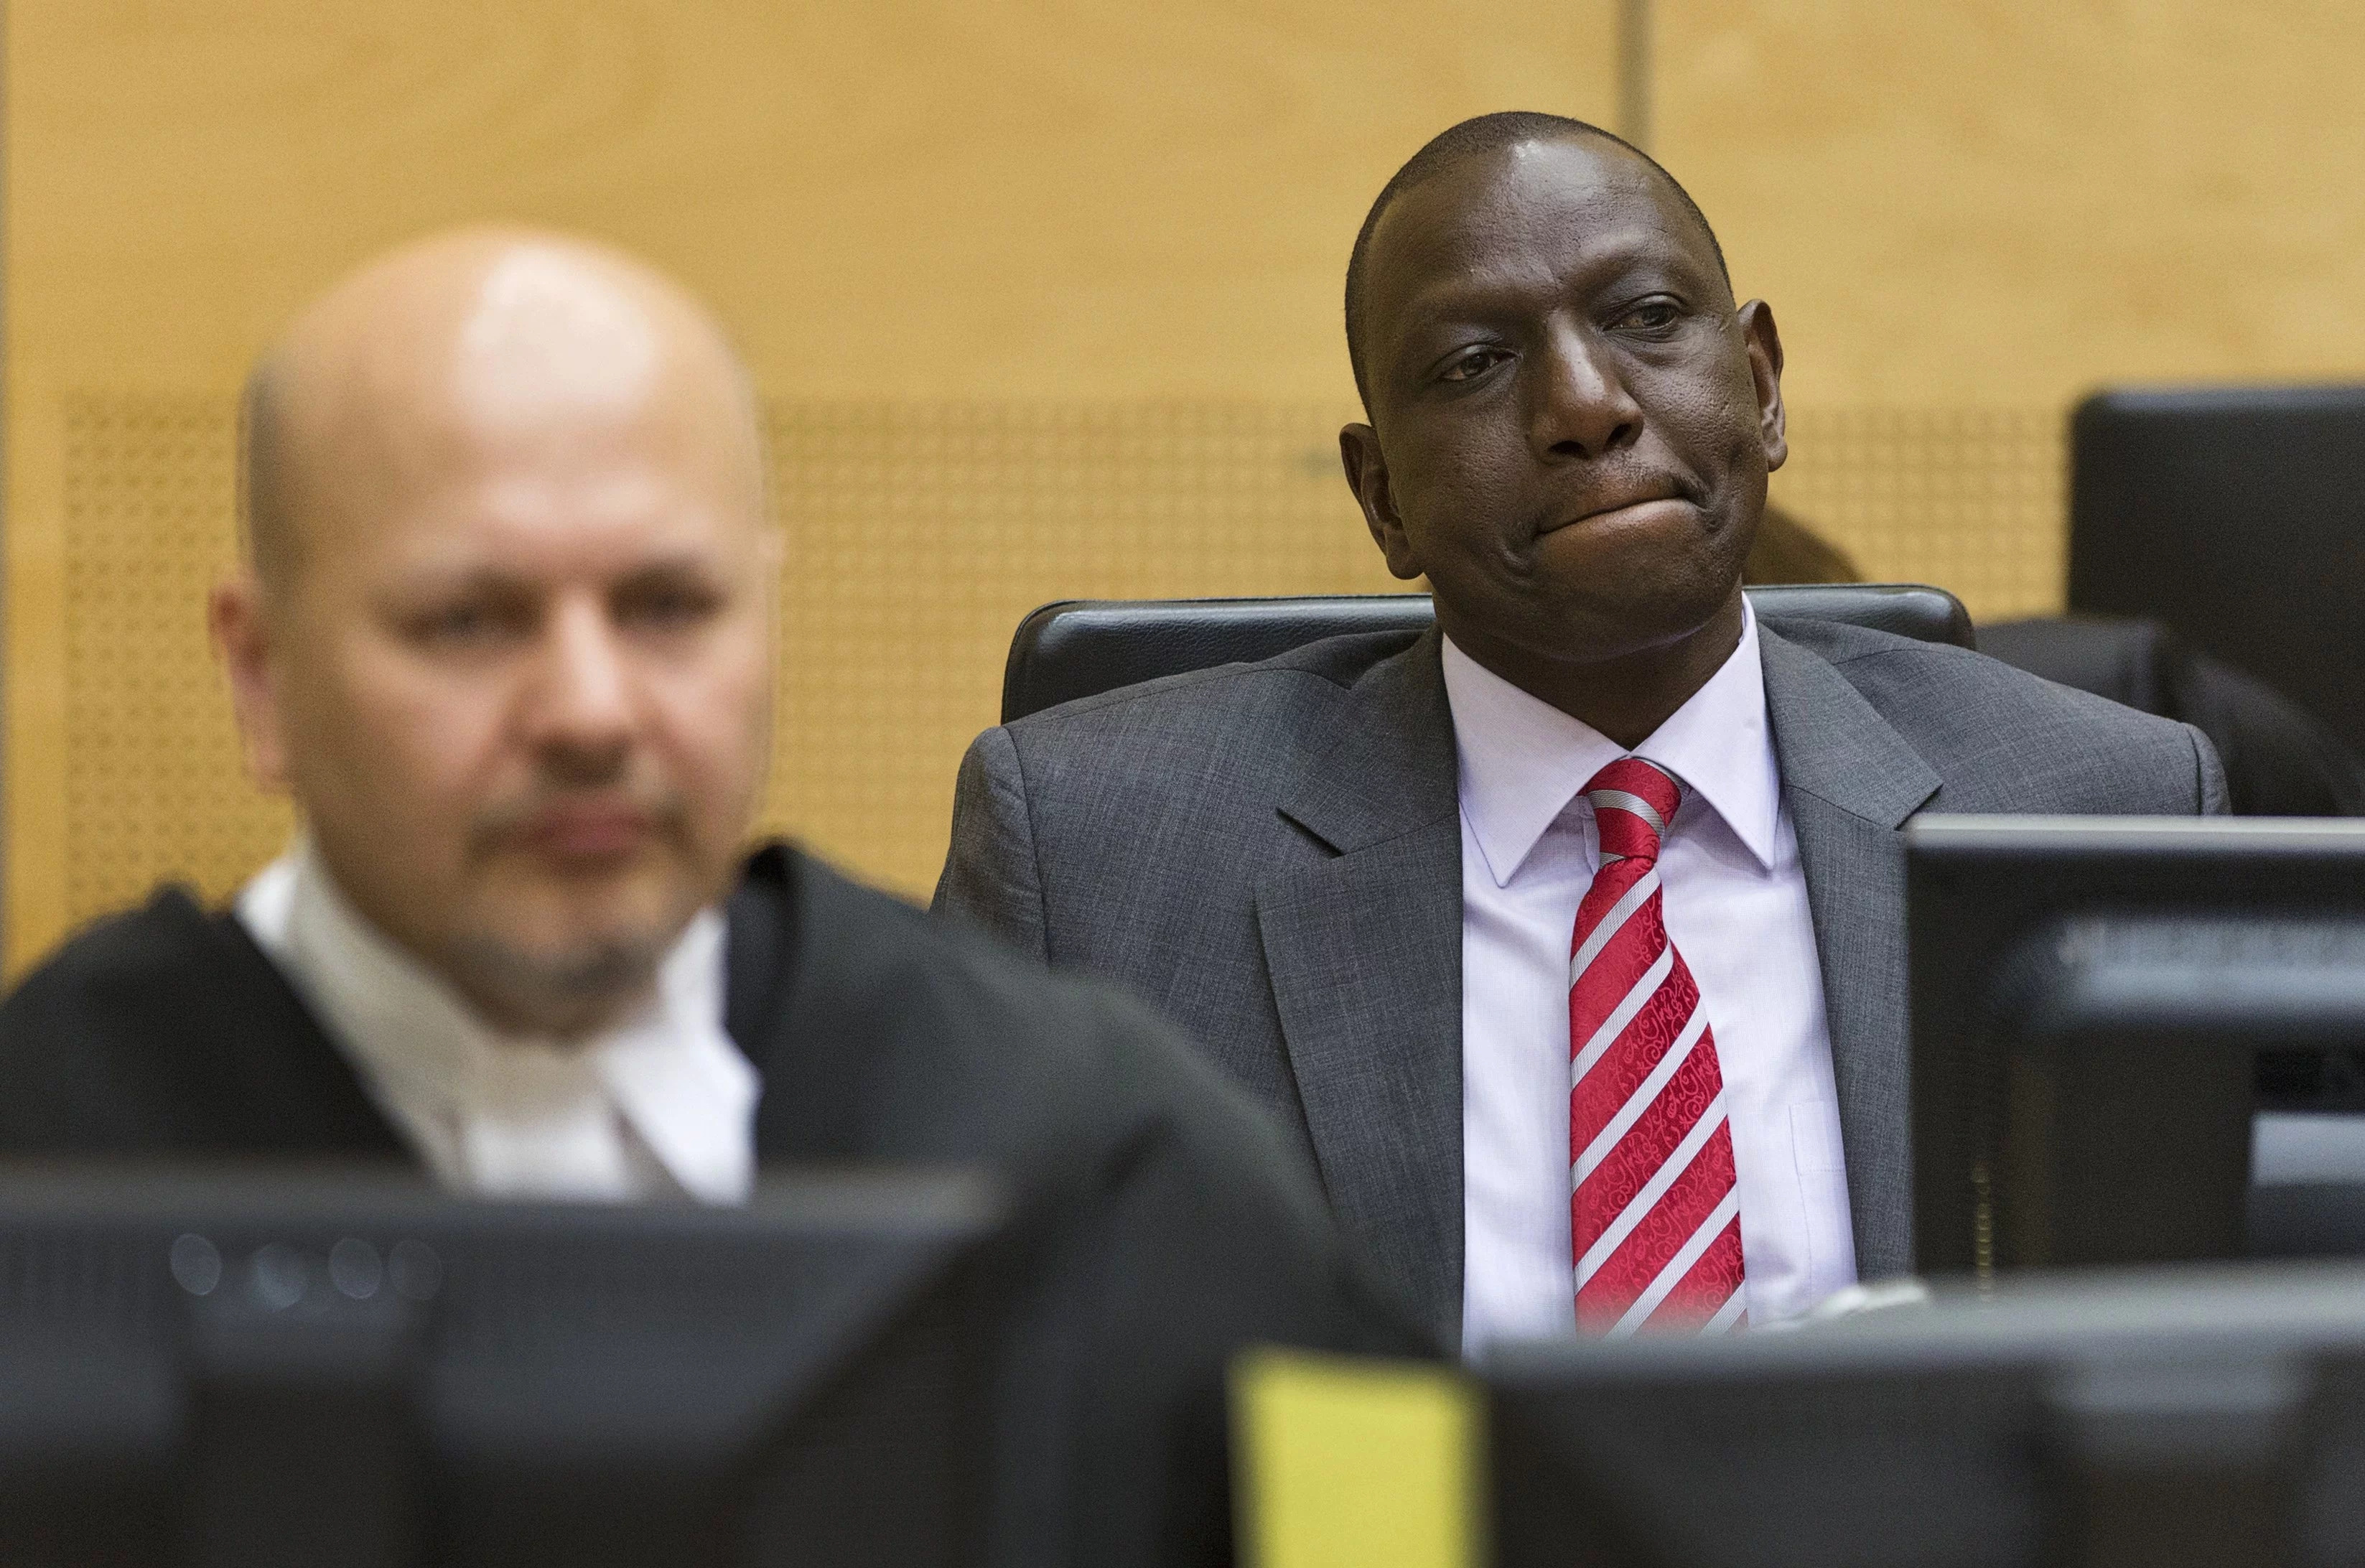 William Ruto's 10 most emotional photos